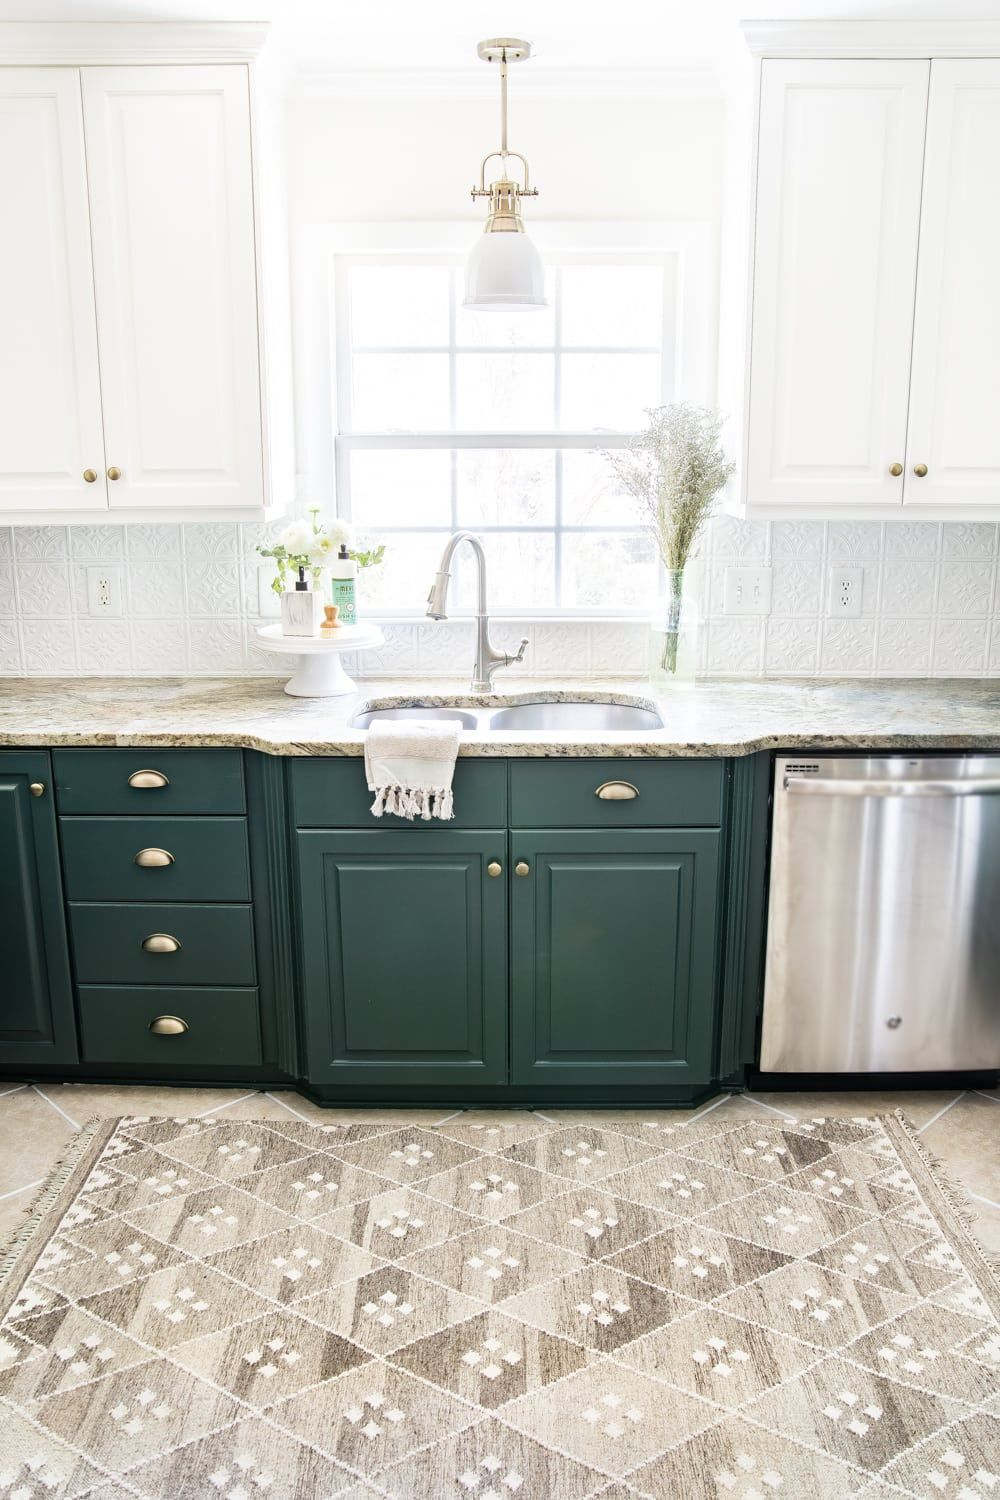 Memory foam layered kitchen rug and tile grout refresh holley